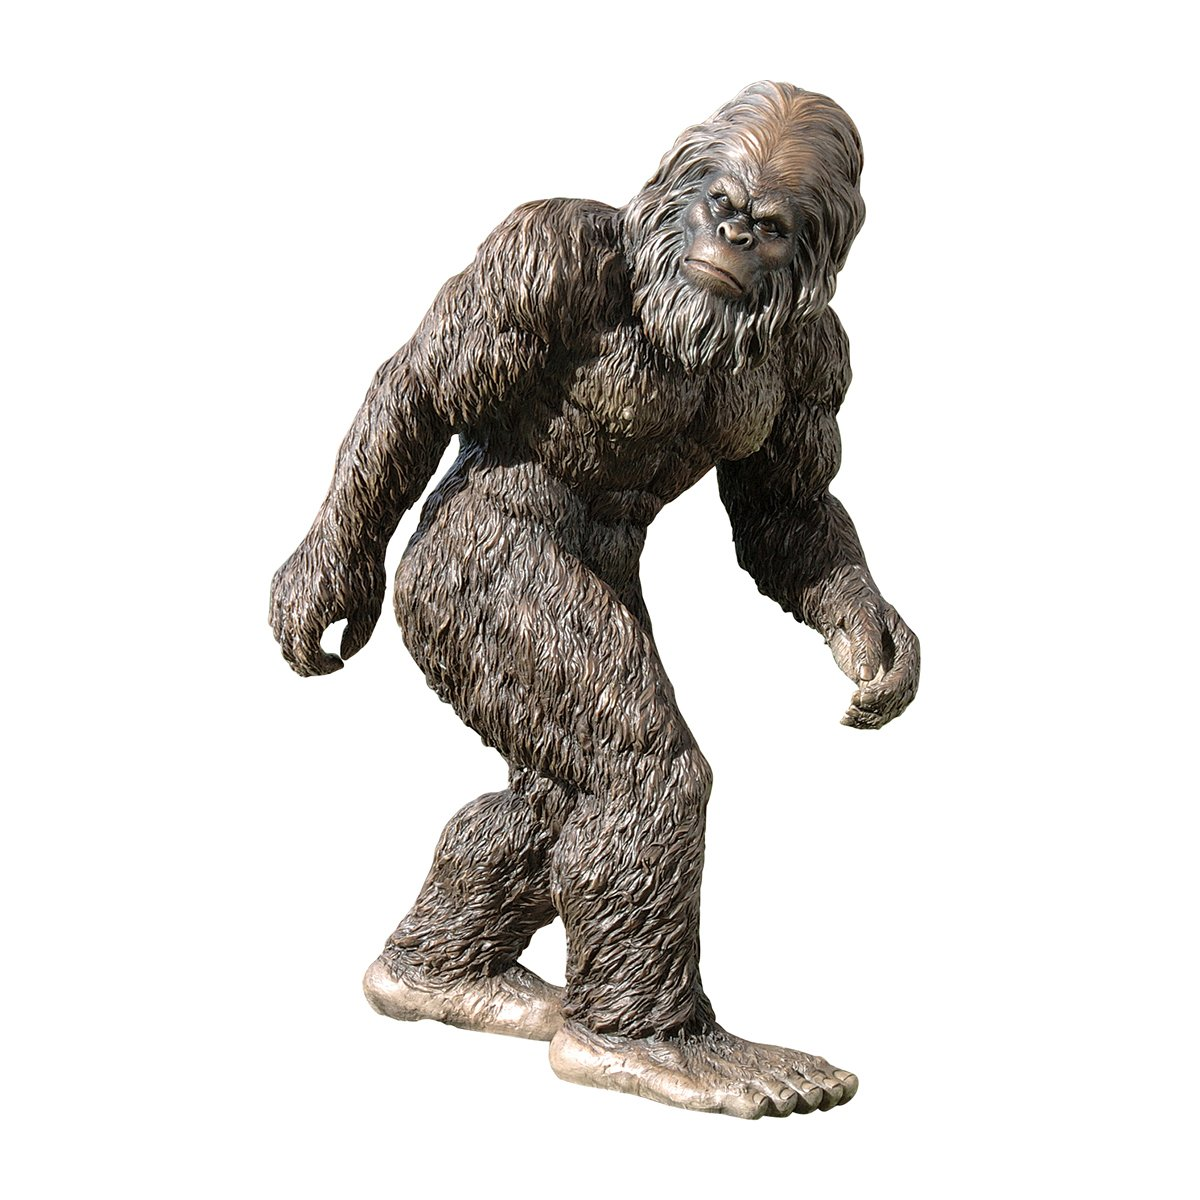 Design Toscano Bigfoot, the Garden Yeti Statue: Medium